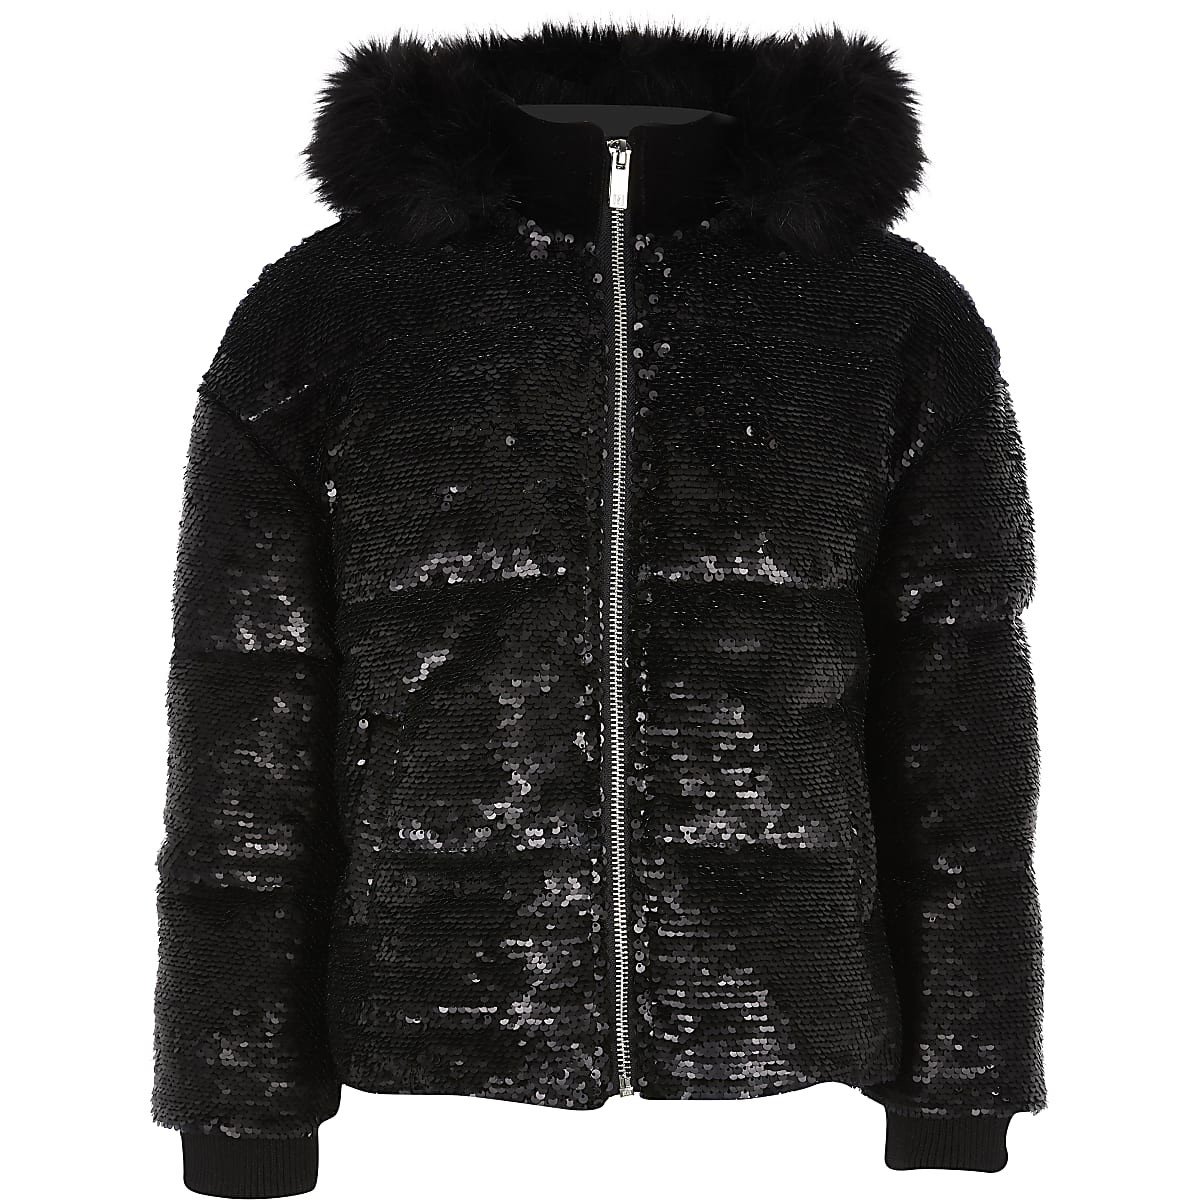 Girls black sequin embellished puffer jacket